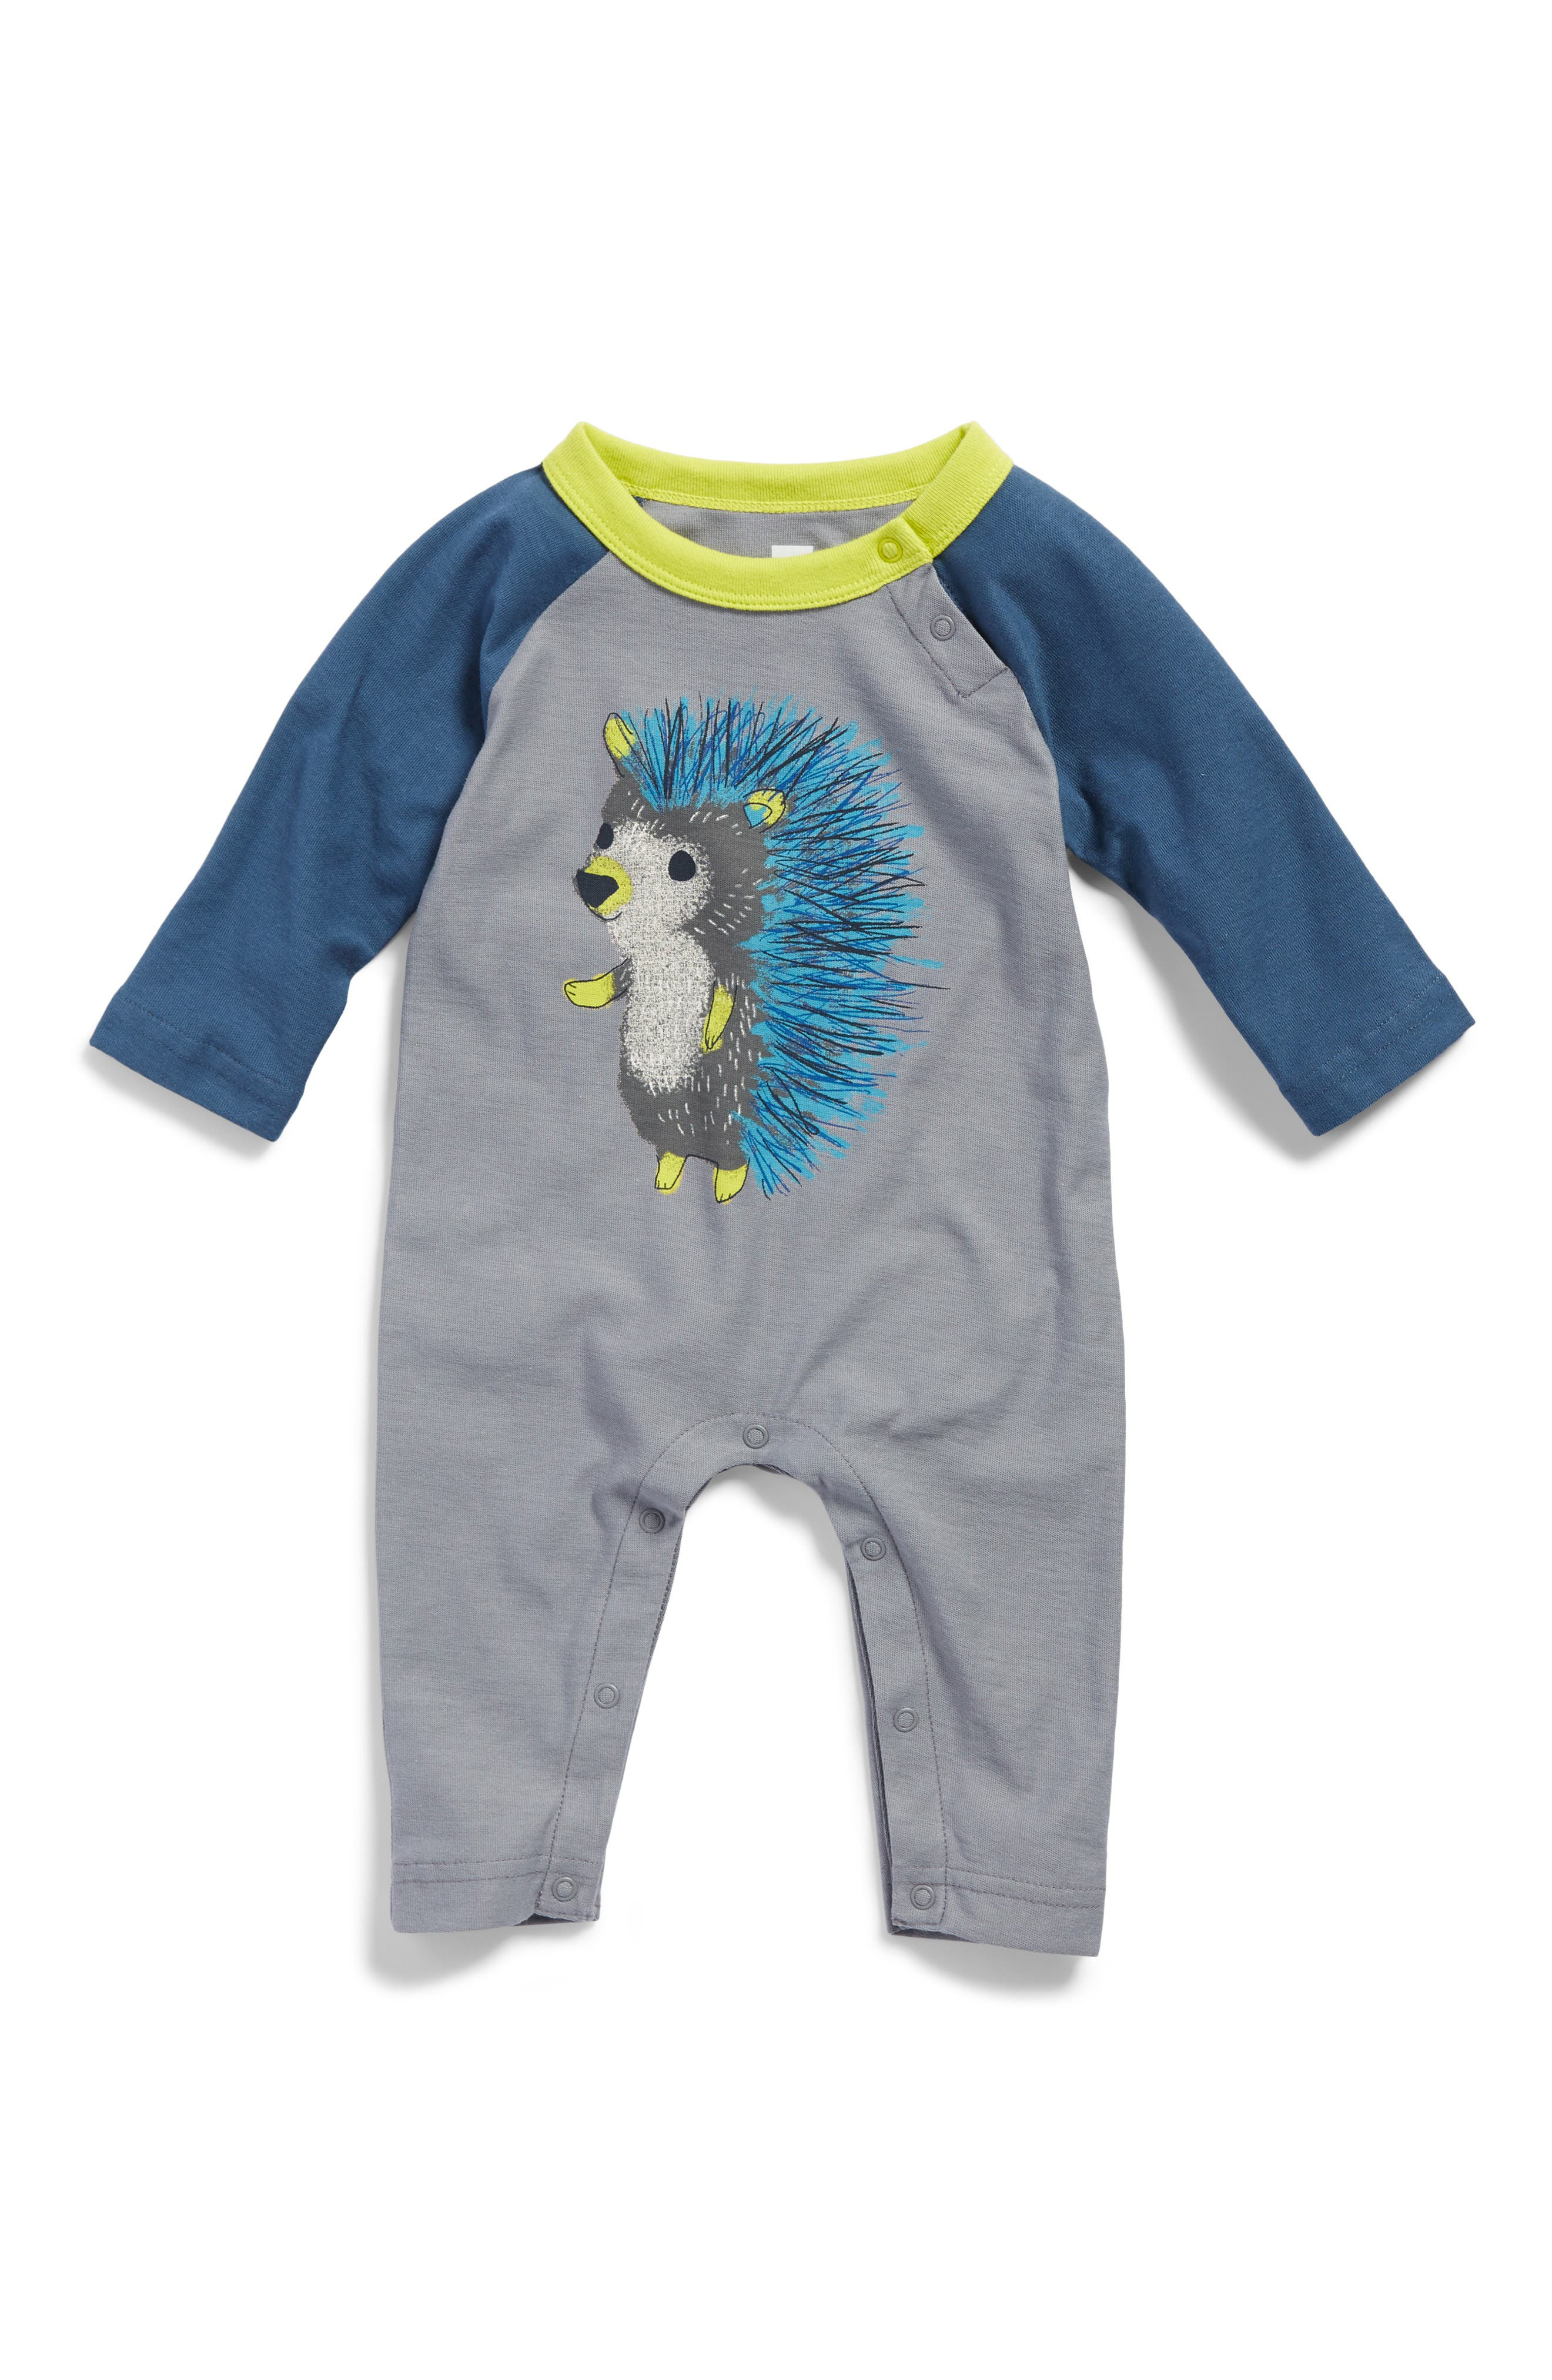 Alternate Image 1 Selected - Tea Collection Hedgehog Graphic Romper (Baby Boys)